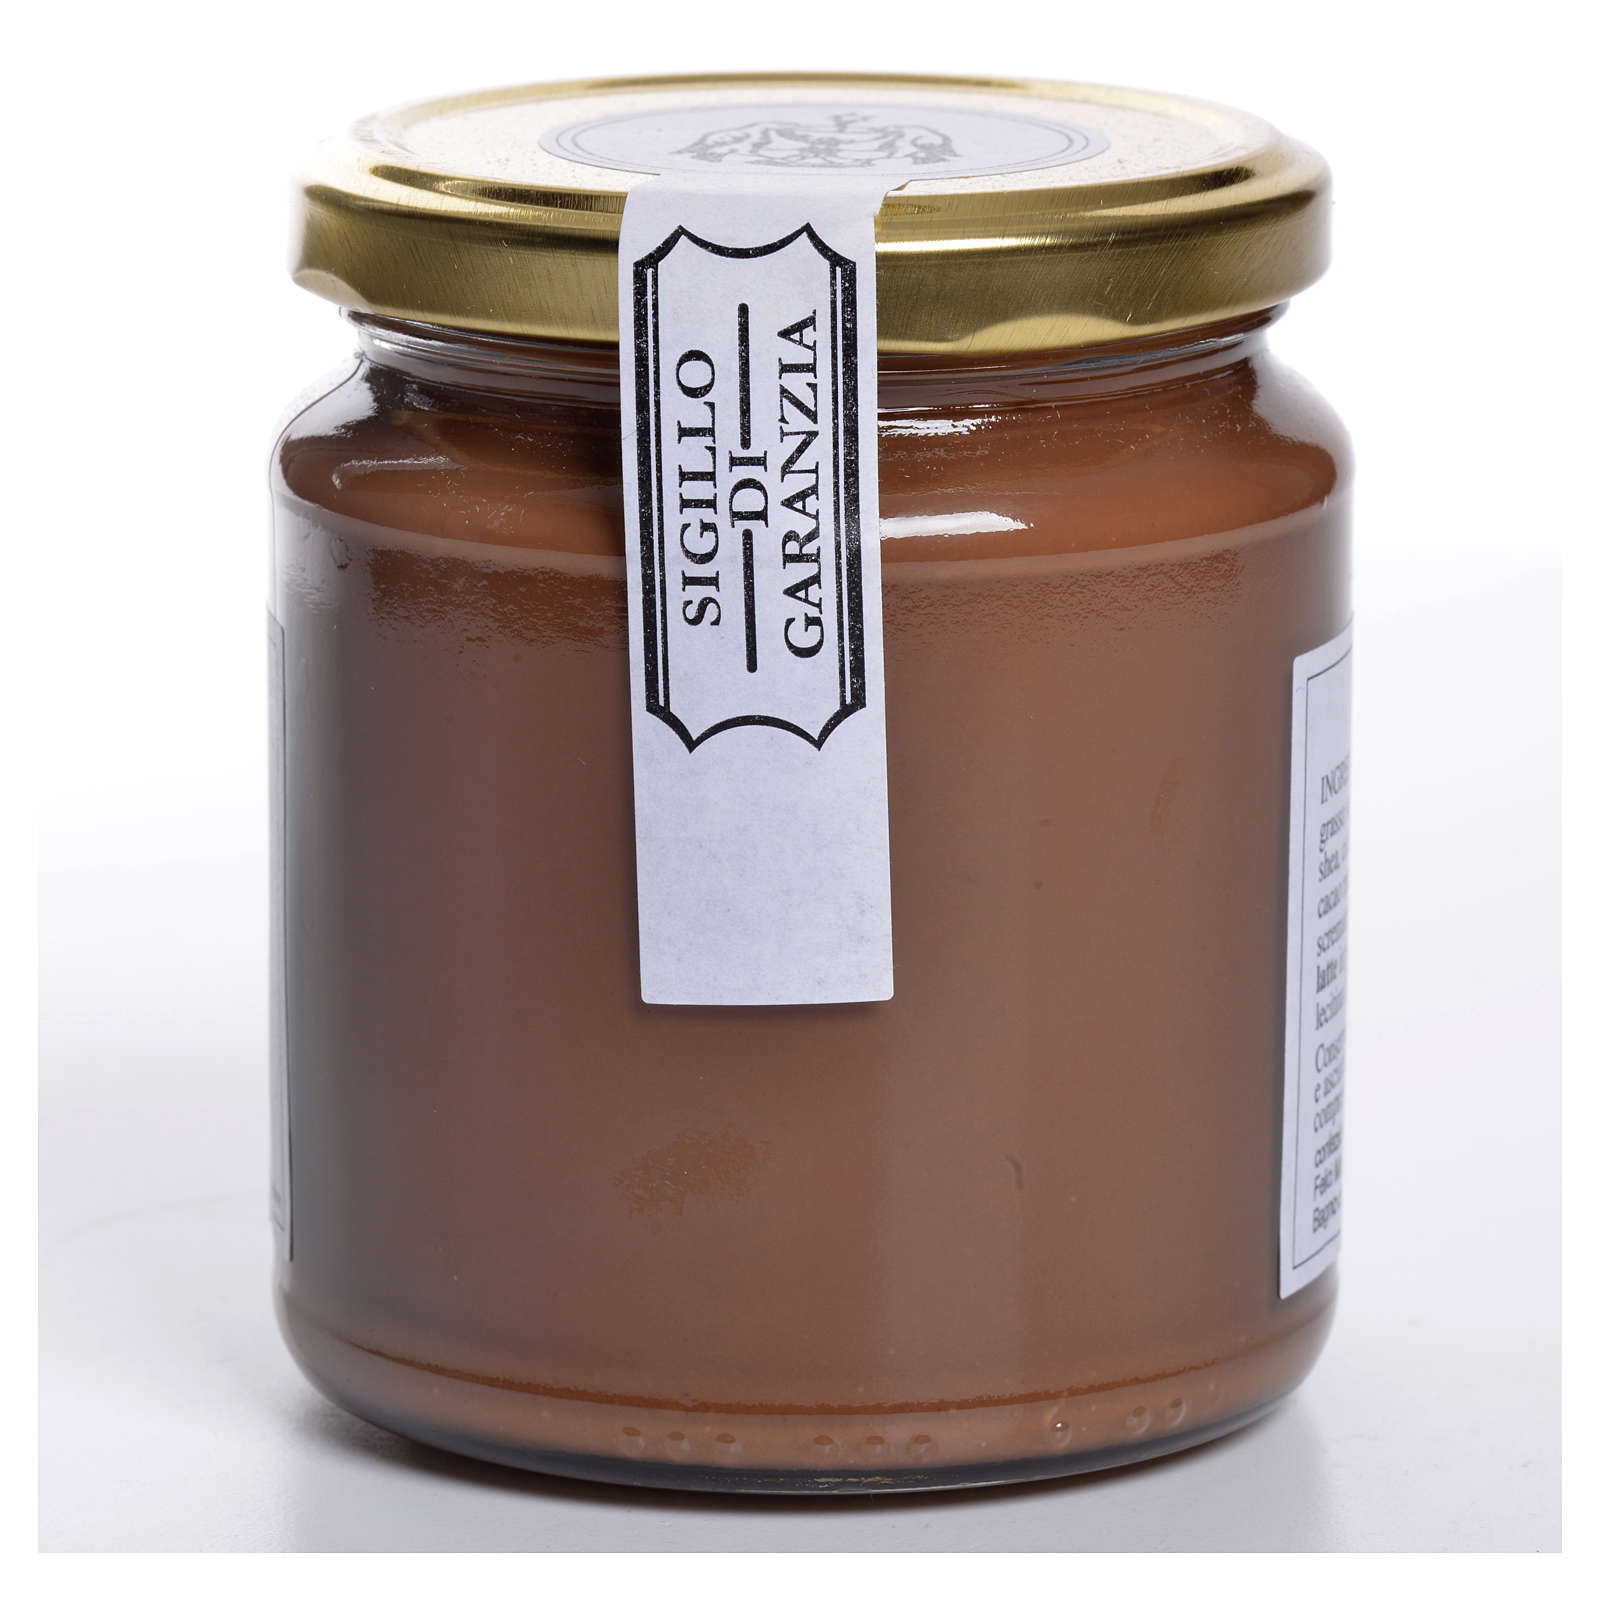 Nut chocolate cream 300gr Camaldoli 3